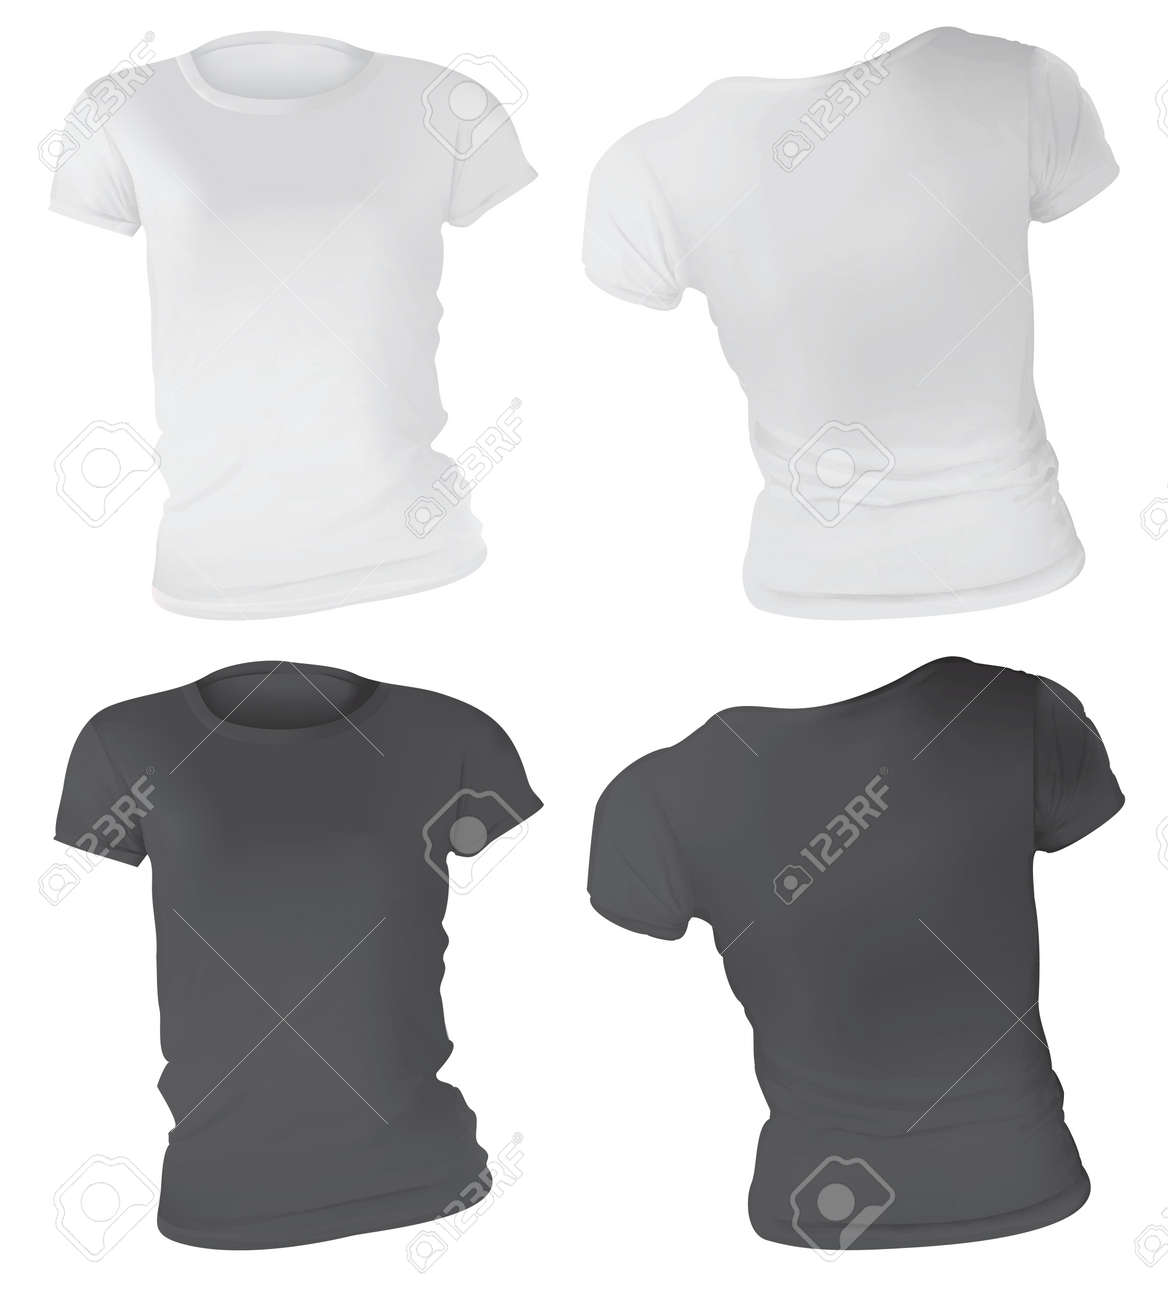 Vector Illustration Of Black And White T Shirt Template For Women